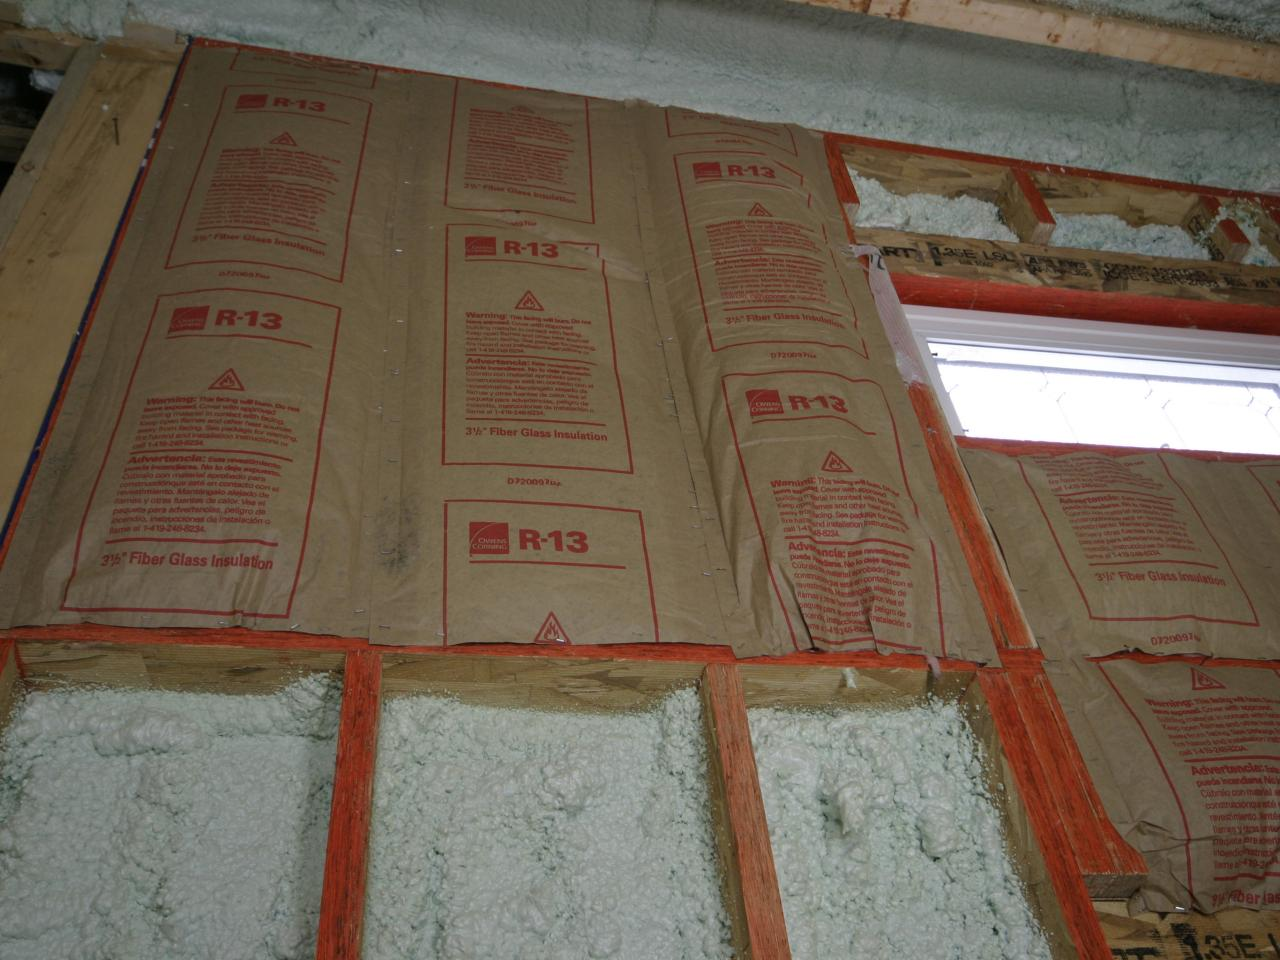 Air sealing a drafty house hgtv - Insulation r value for exterior walls ...